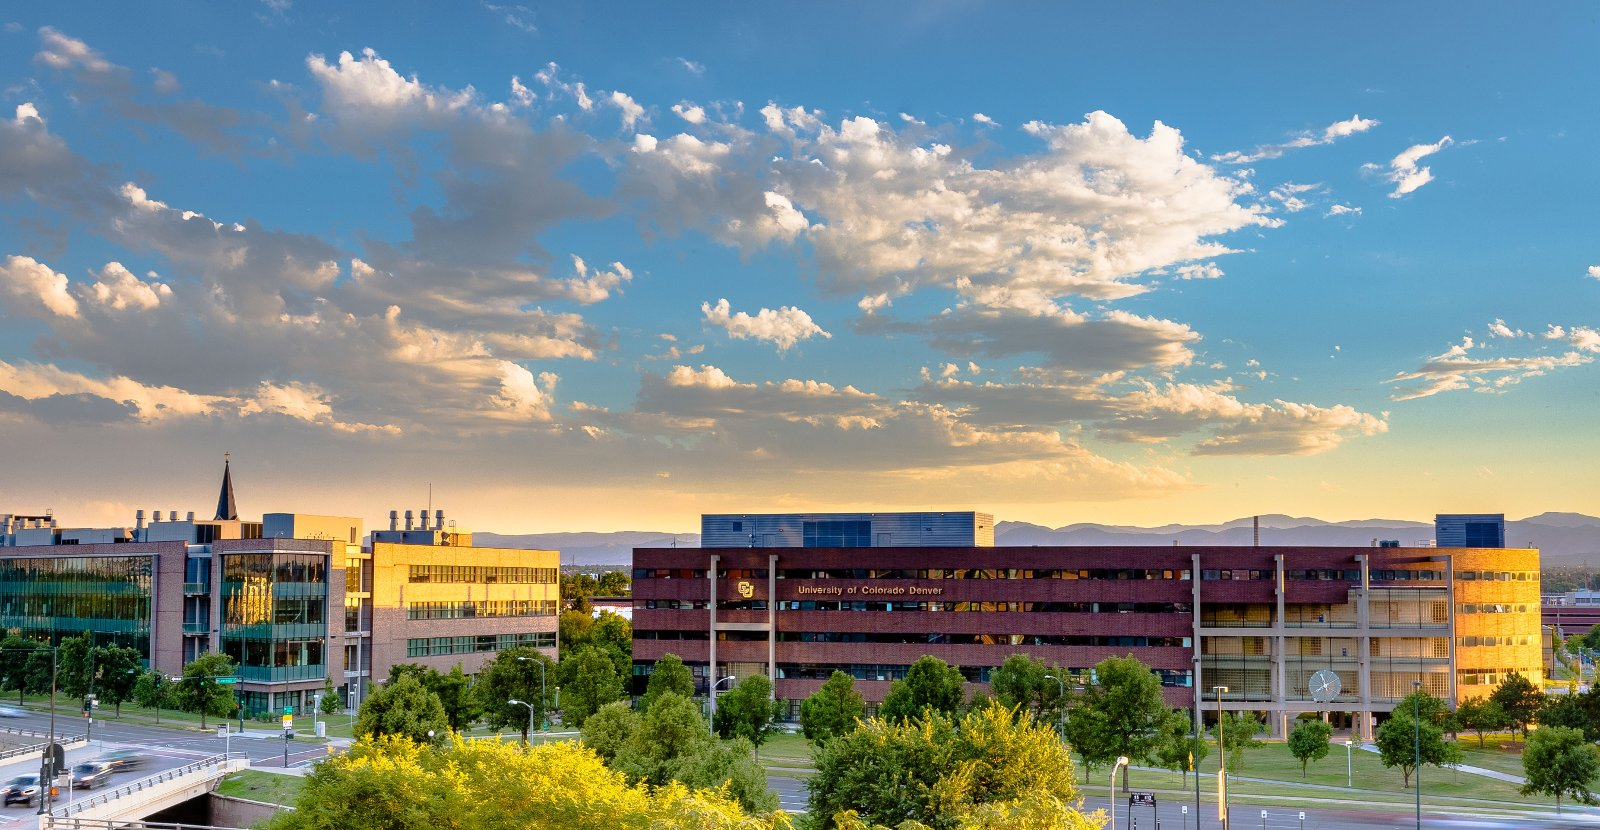 Cu_denver_campus_buildings_at_dusk